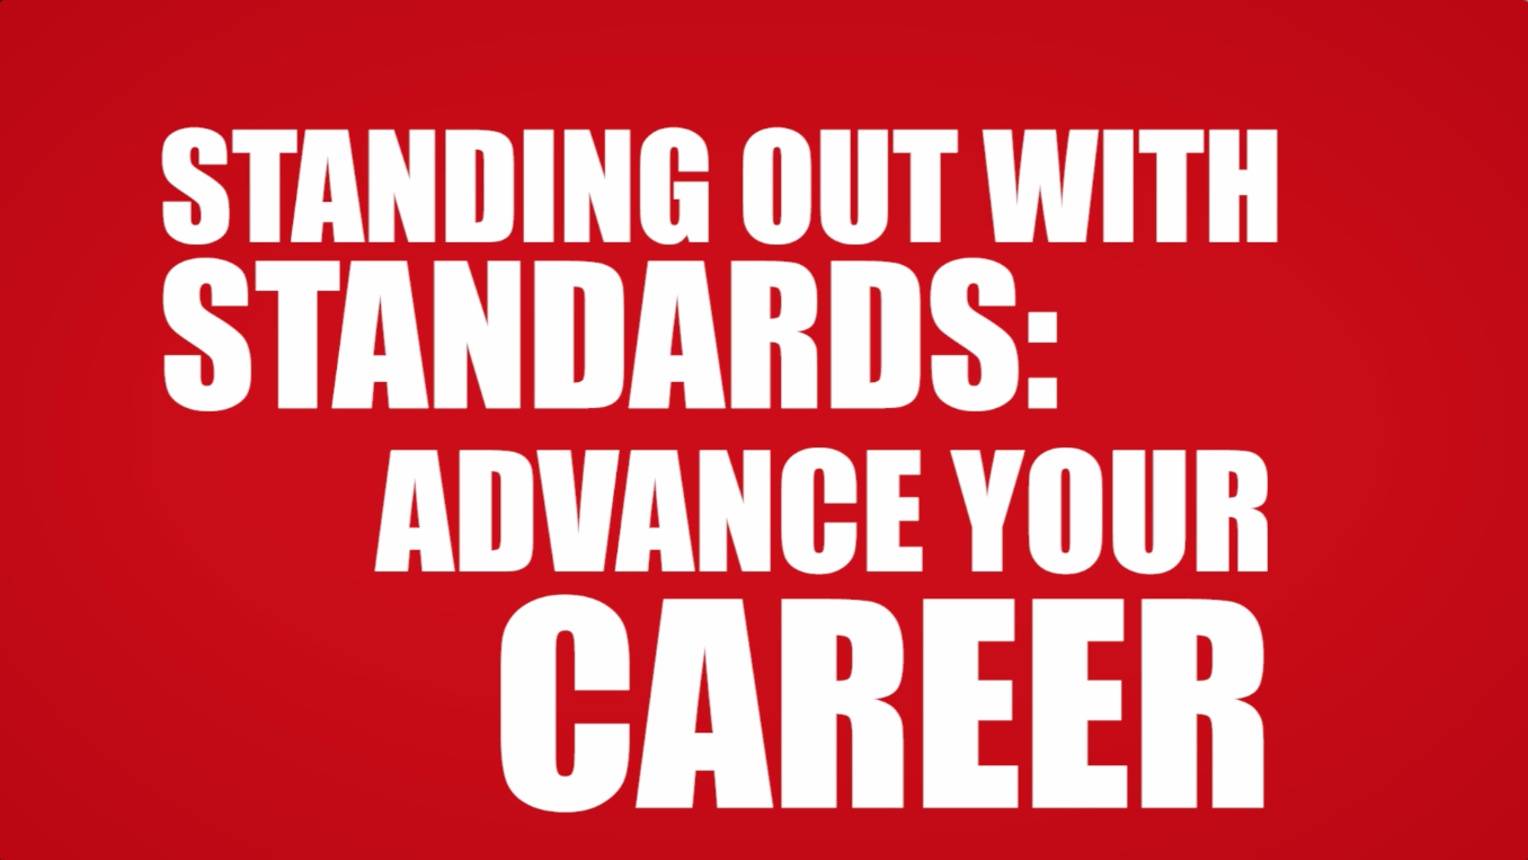 Advance Your Career: Standing Out with Standards